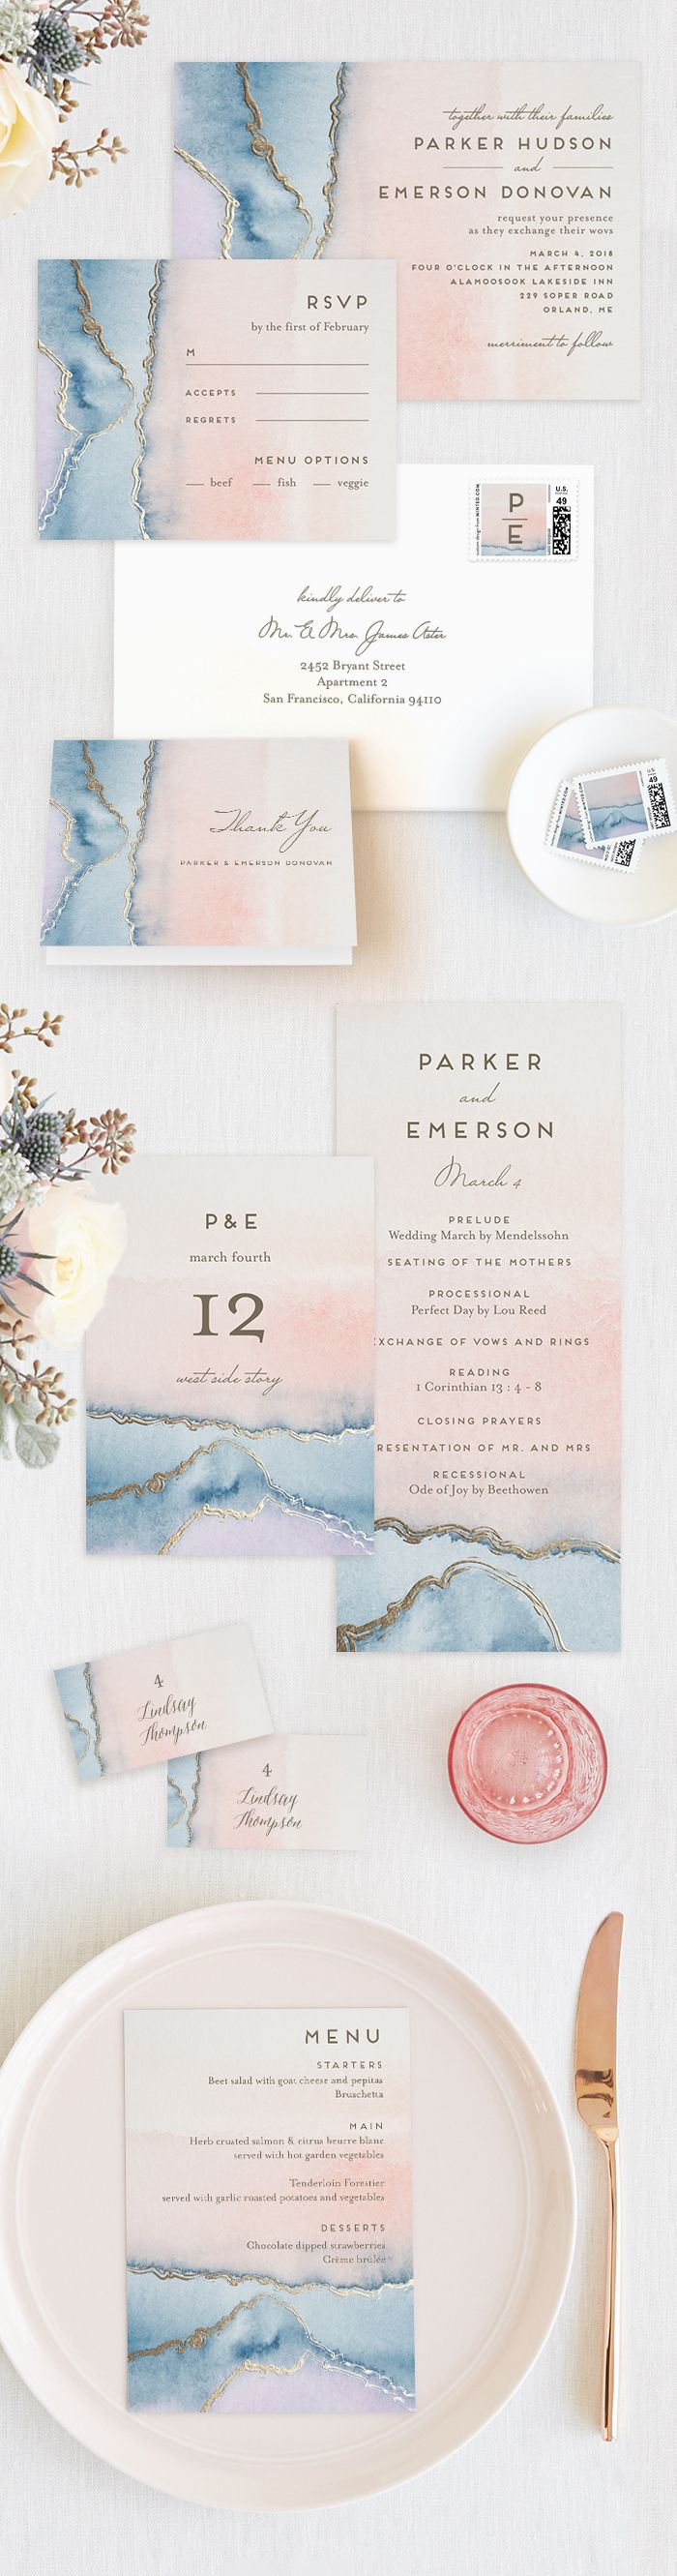 Geode gorgeousness. Go dreamy with a pastel perfect Agate on your wedding day, like this Simple Agate wedding invitation design by Minted artists Petra Kern.